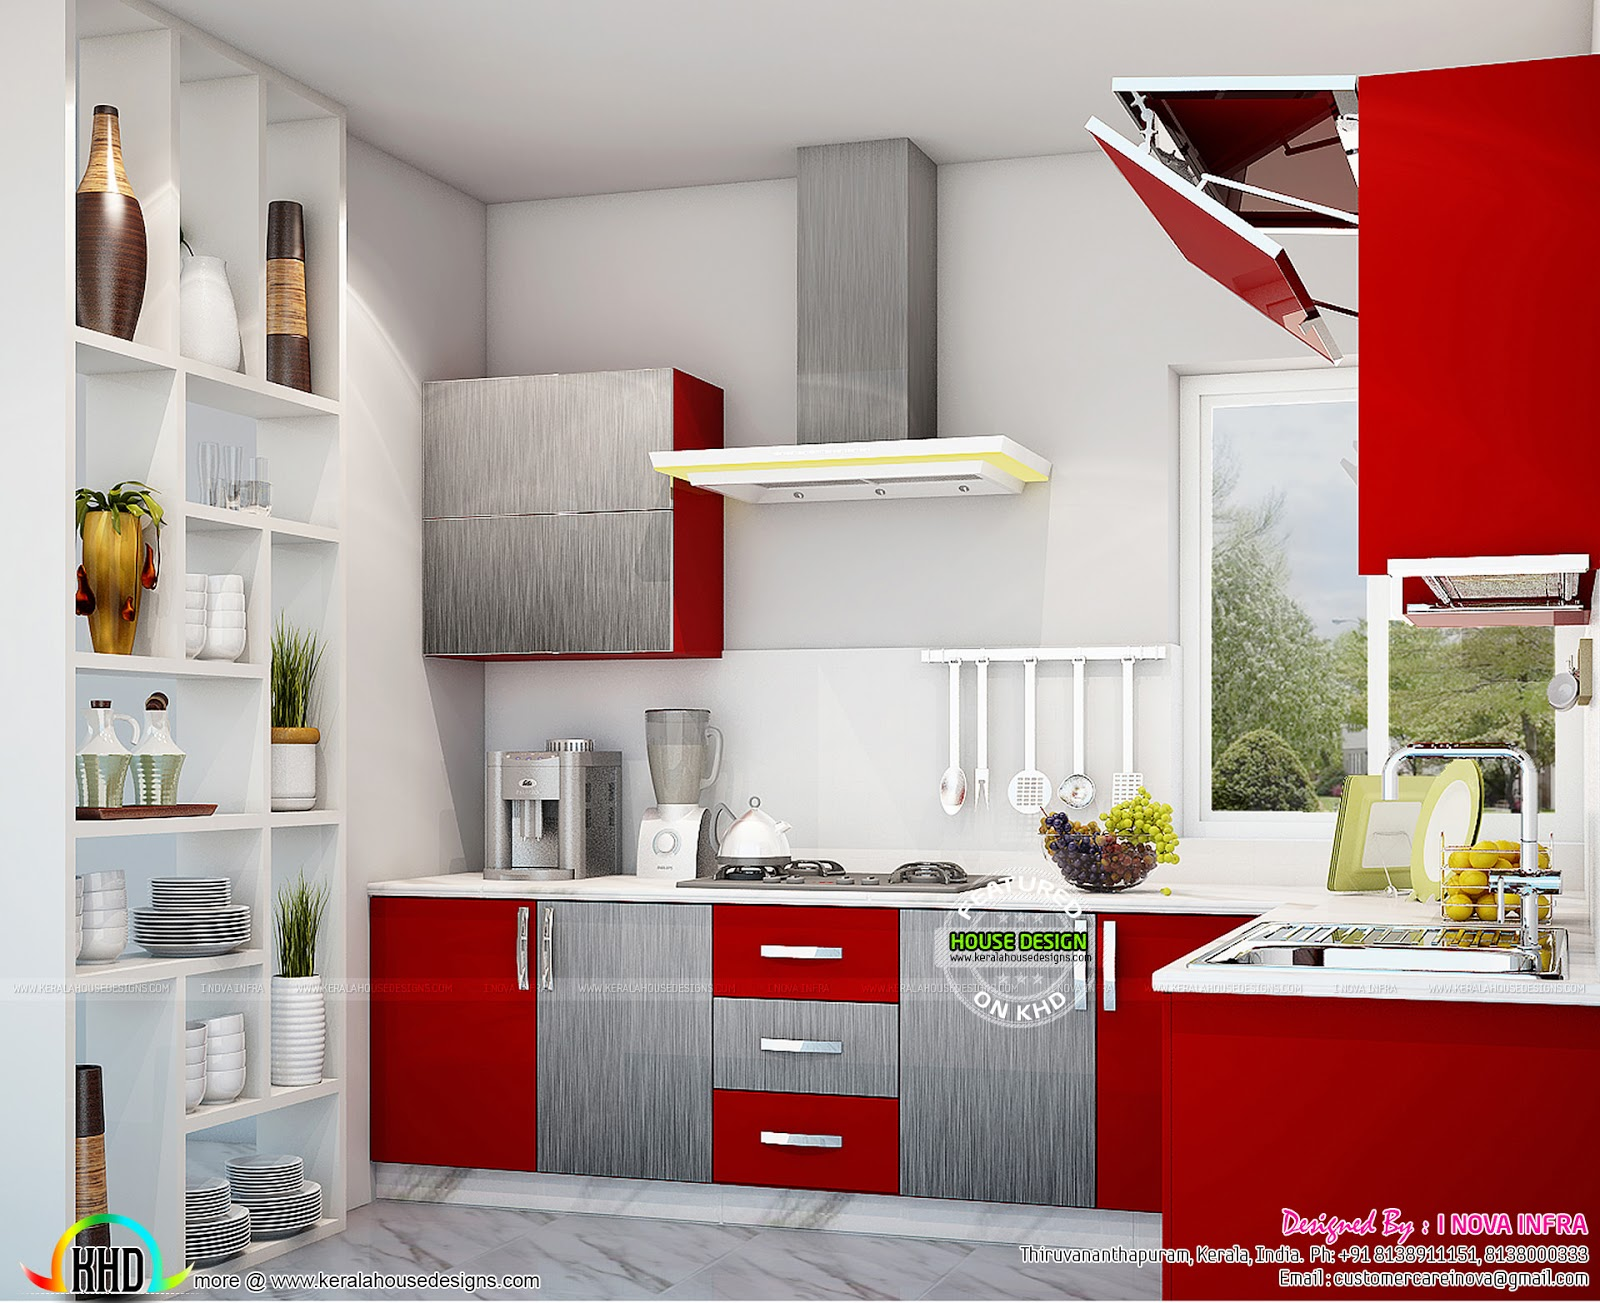 Kitchen interior works at trivandrum kerala home design for Kitchen interior decoration images